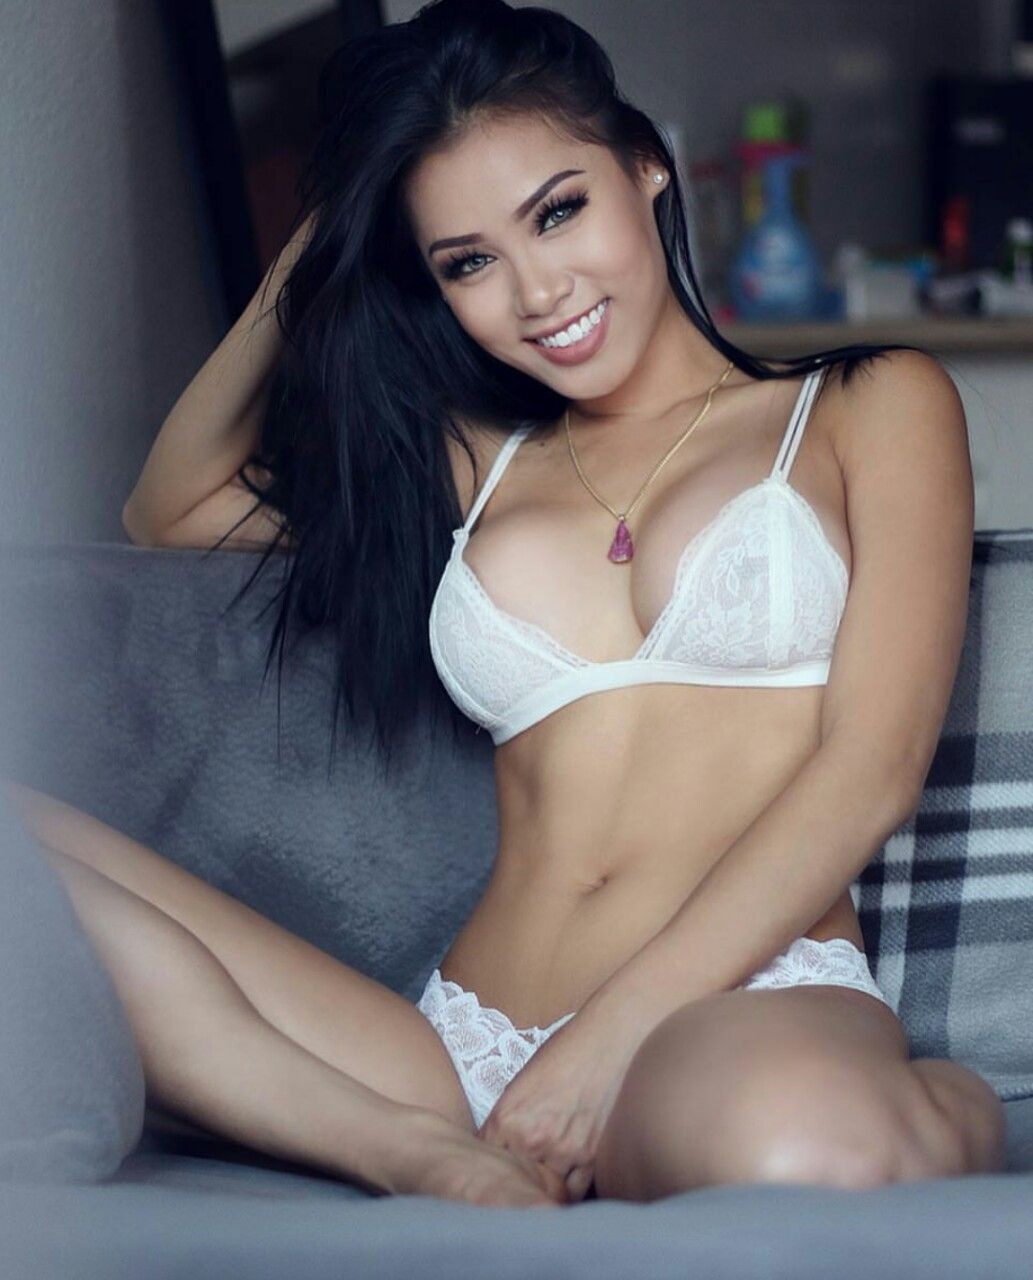 non pornographic pictures of sexy girls